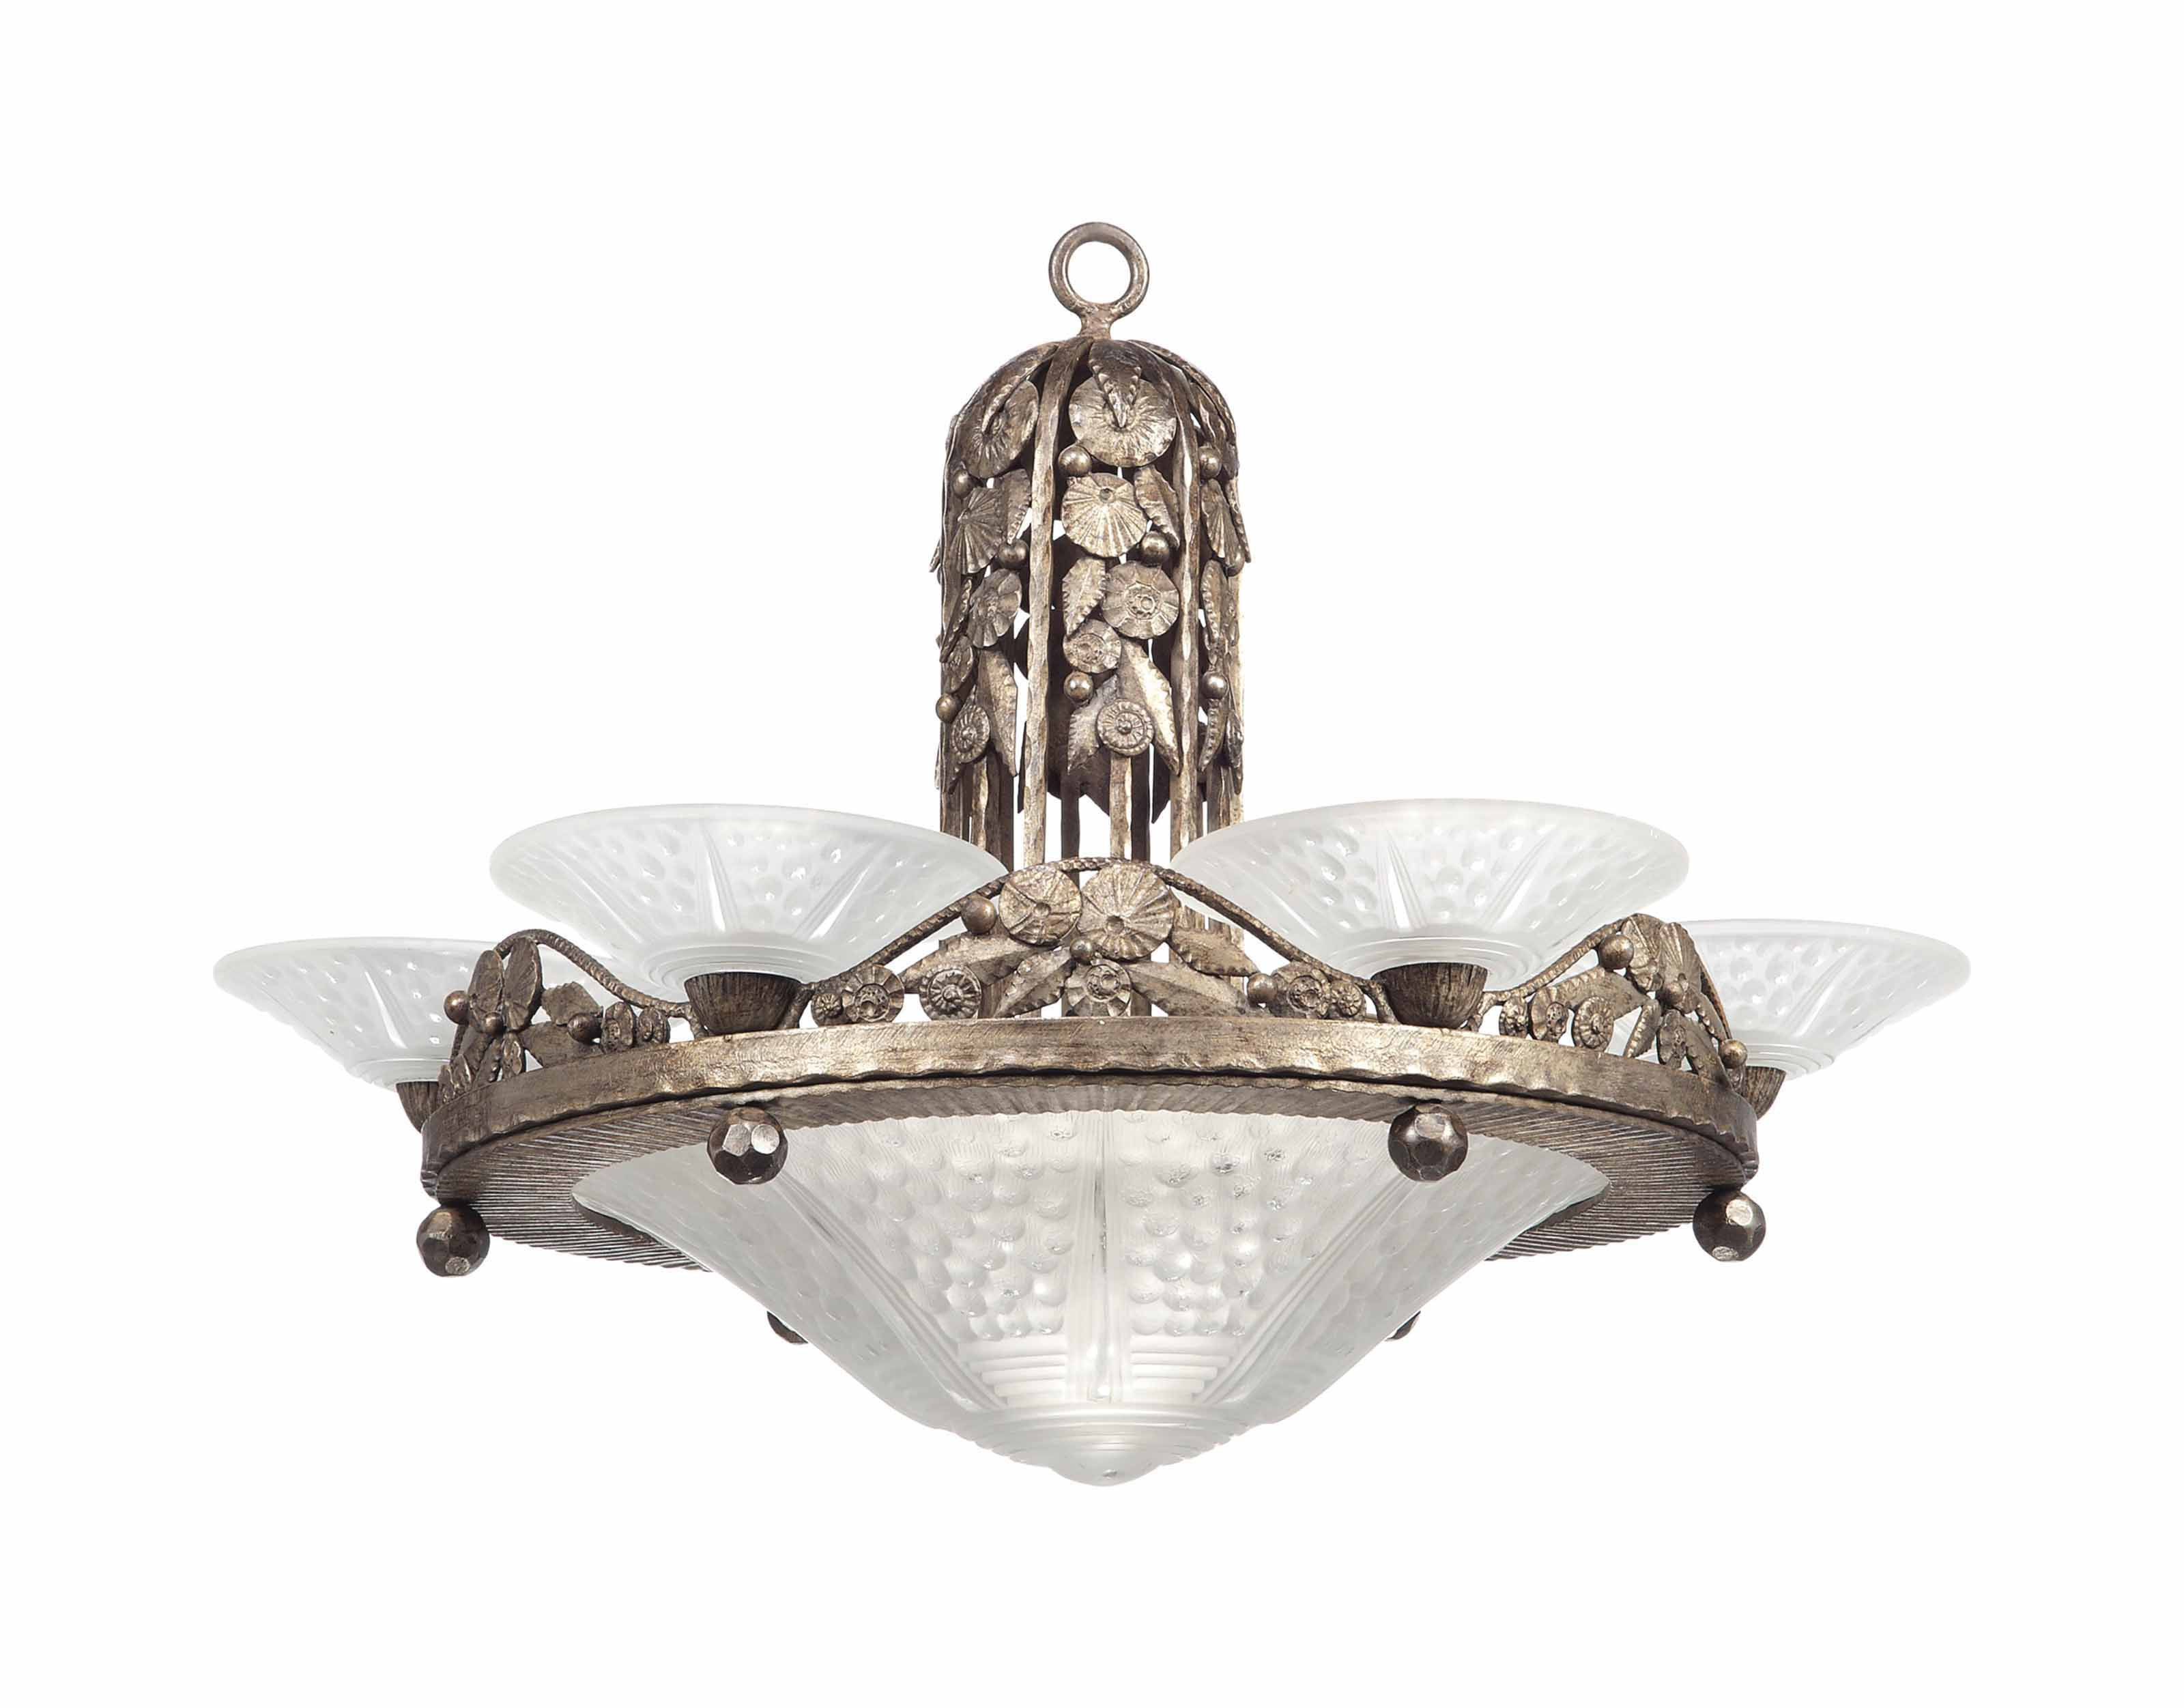 A FRENCH ART DECO WROUGHT-IRON CHANDELIER WITH MOULDED GLASS SHADES BY MULLER FRERES